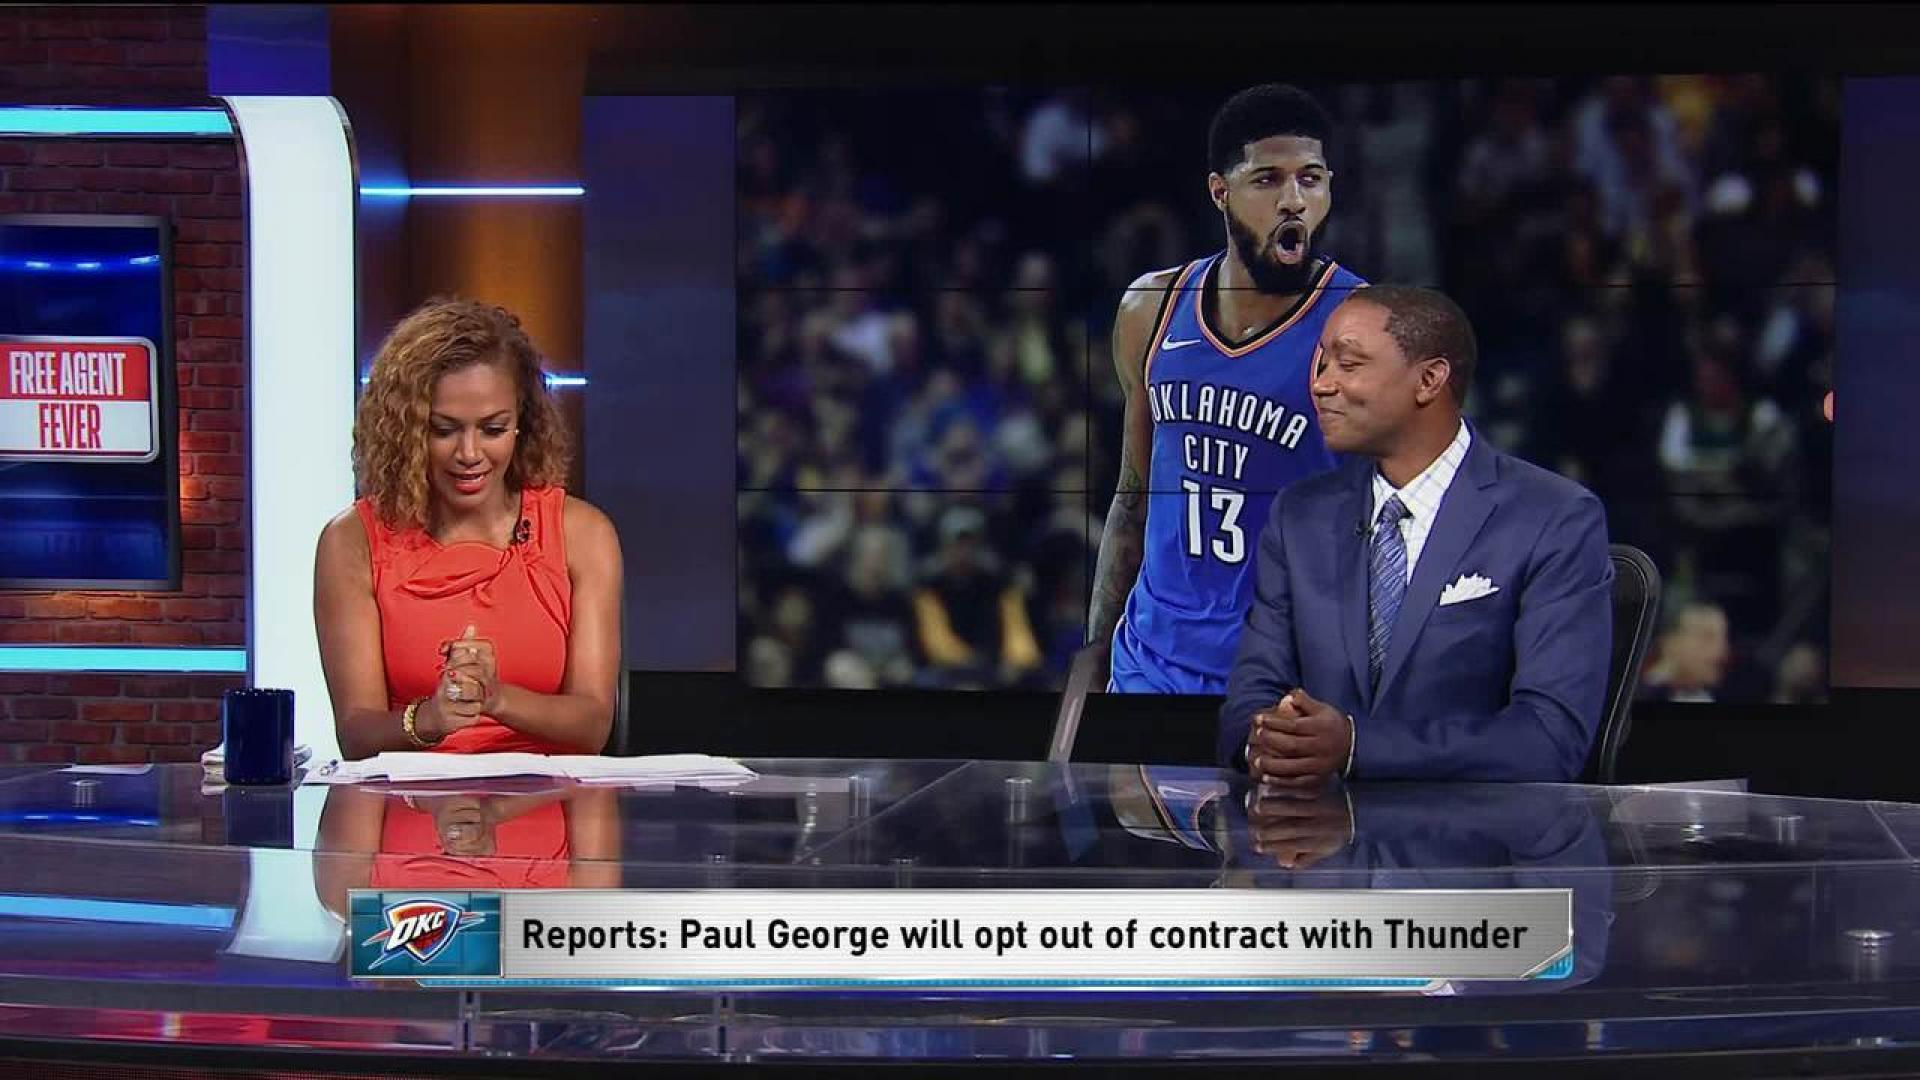 56c6a4c4e78 Paul George will opt out of contract